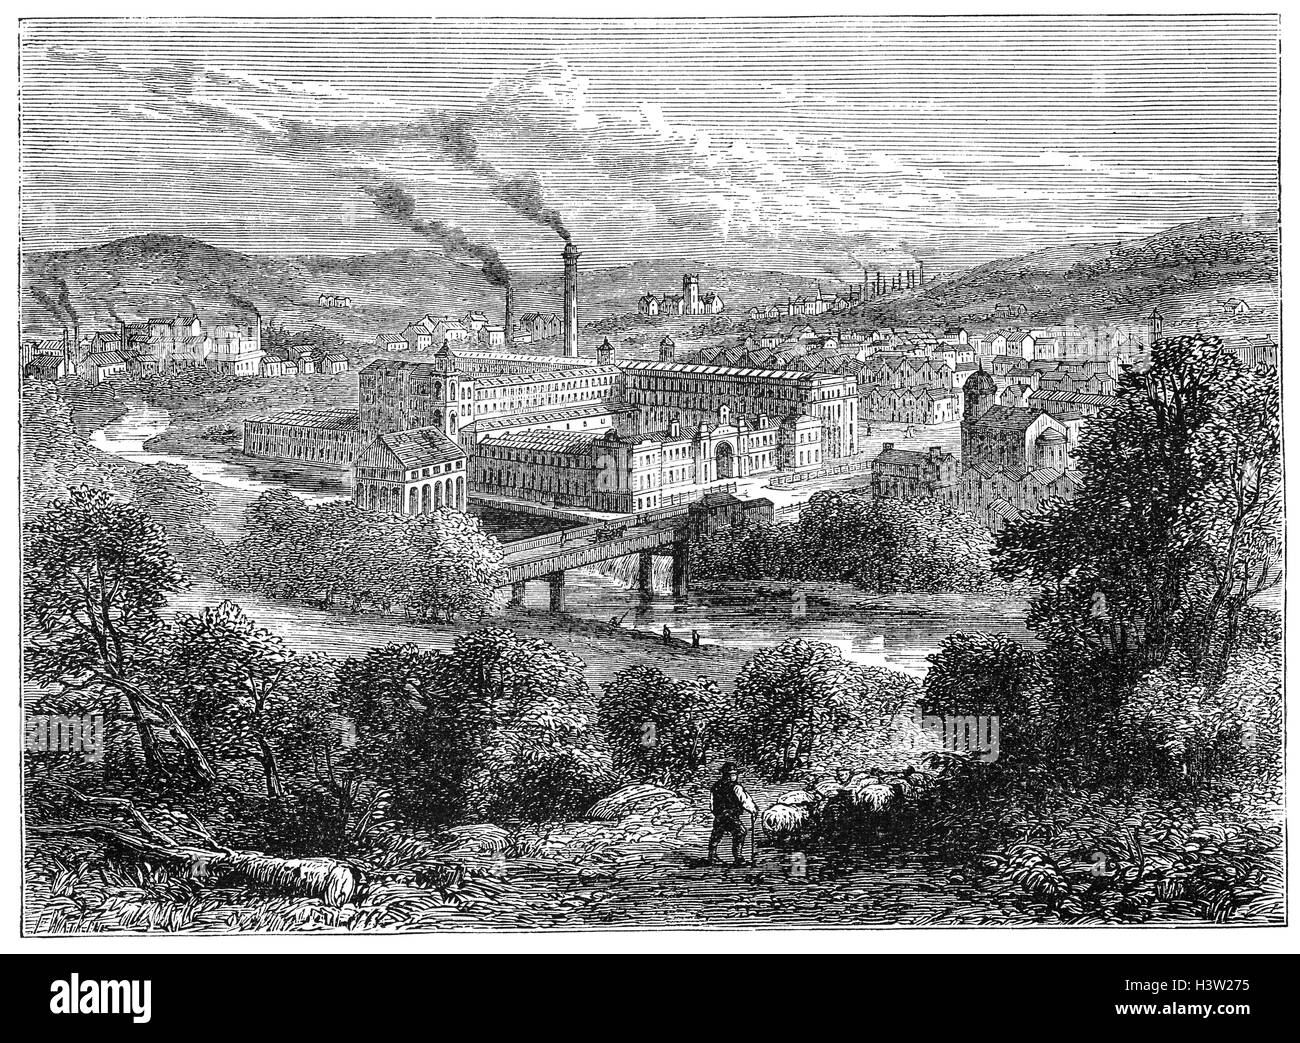 Saltaire is a Victorian model village located in Shipley, was built in 1851 by Sir Titus Salt, a leading industrialist - Stock Image